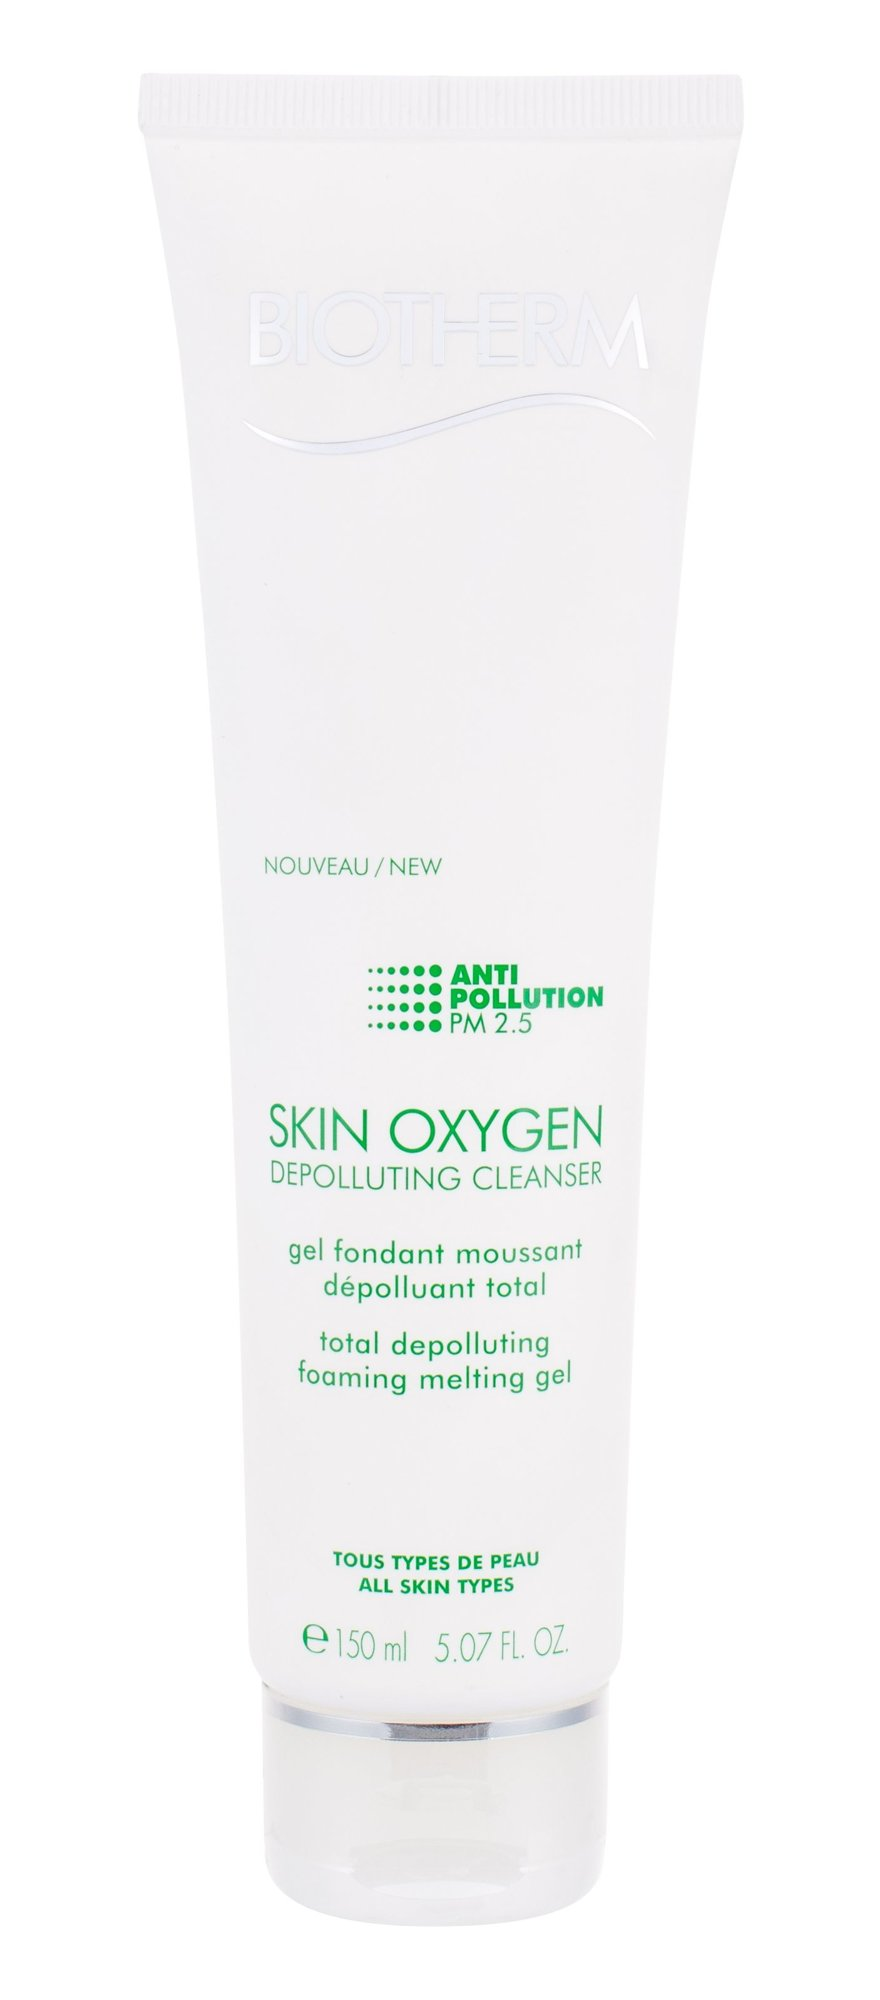 Biotherm Skin Oxygen Cosmetic 150ml  Depolluting Cleanser